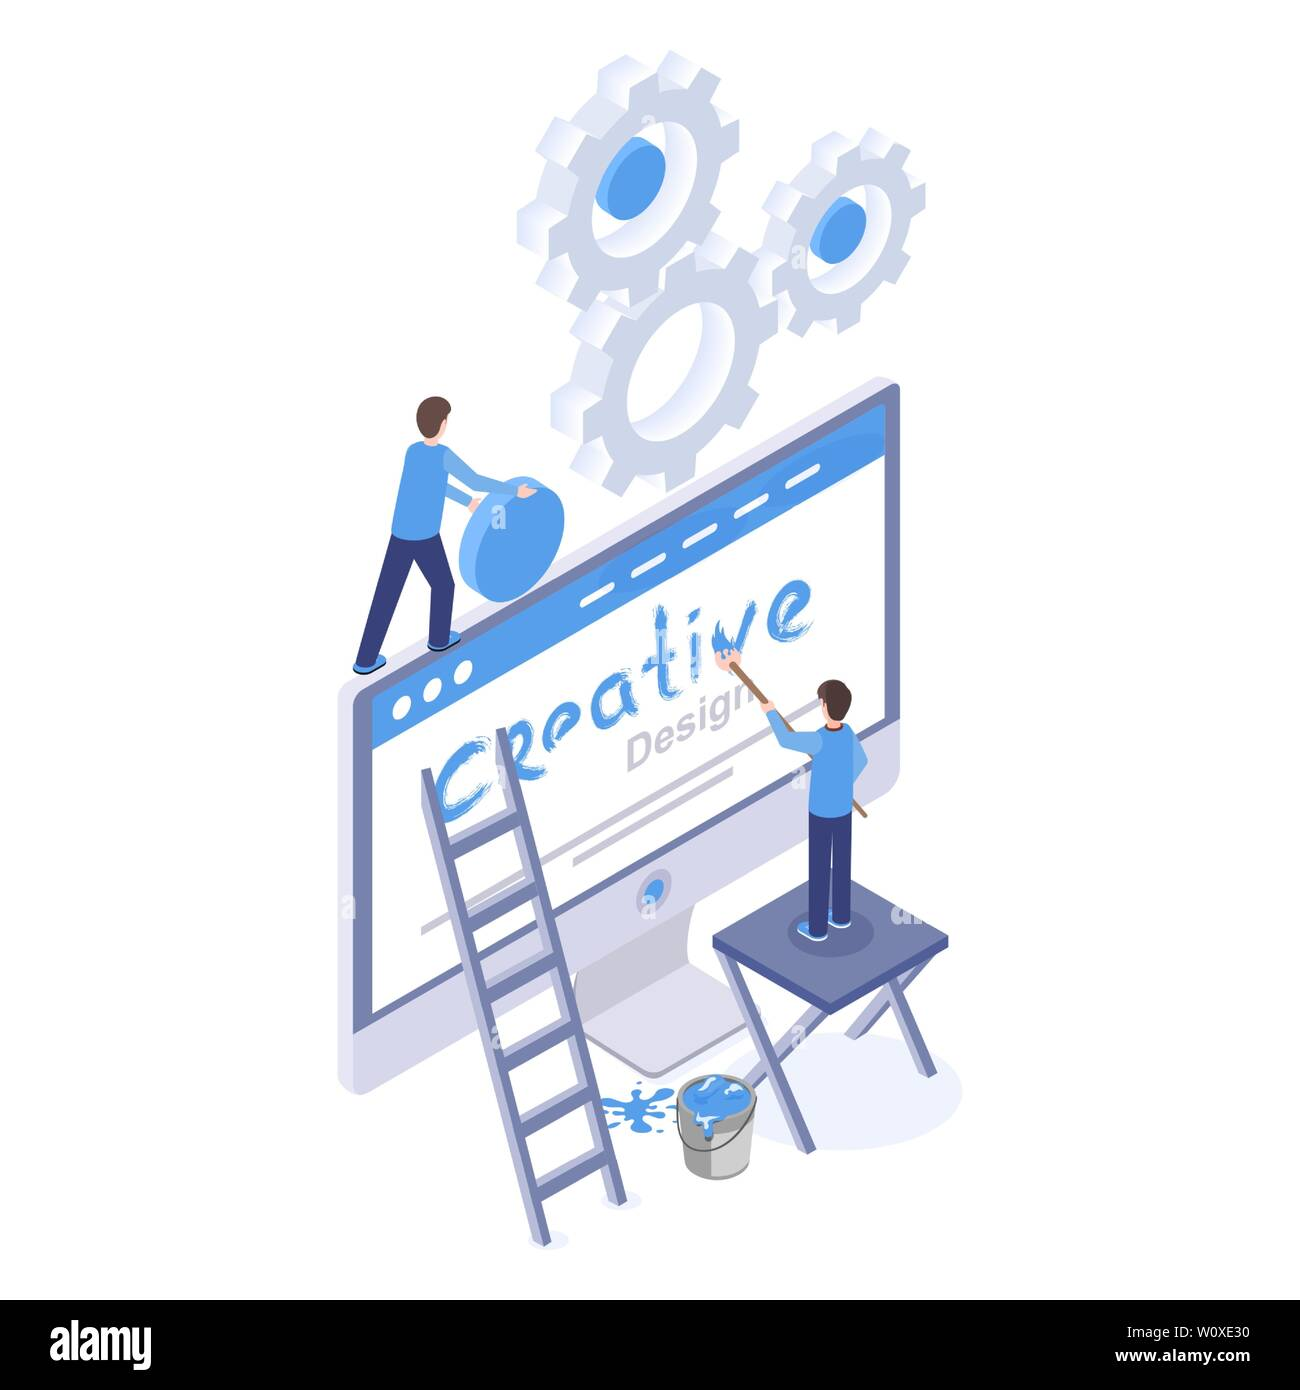 Web Design Software Optimization Isometric Illustration Graphic And Digital Designers Creating Website Homepage Mobile App Interface Isolated Clipart Ui Ux Development 3d Drawing Stock Vector Image Art Alamy